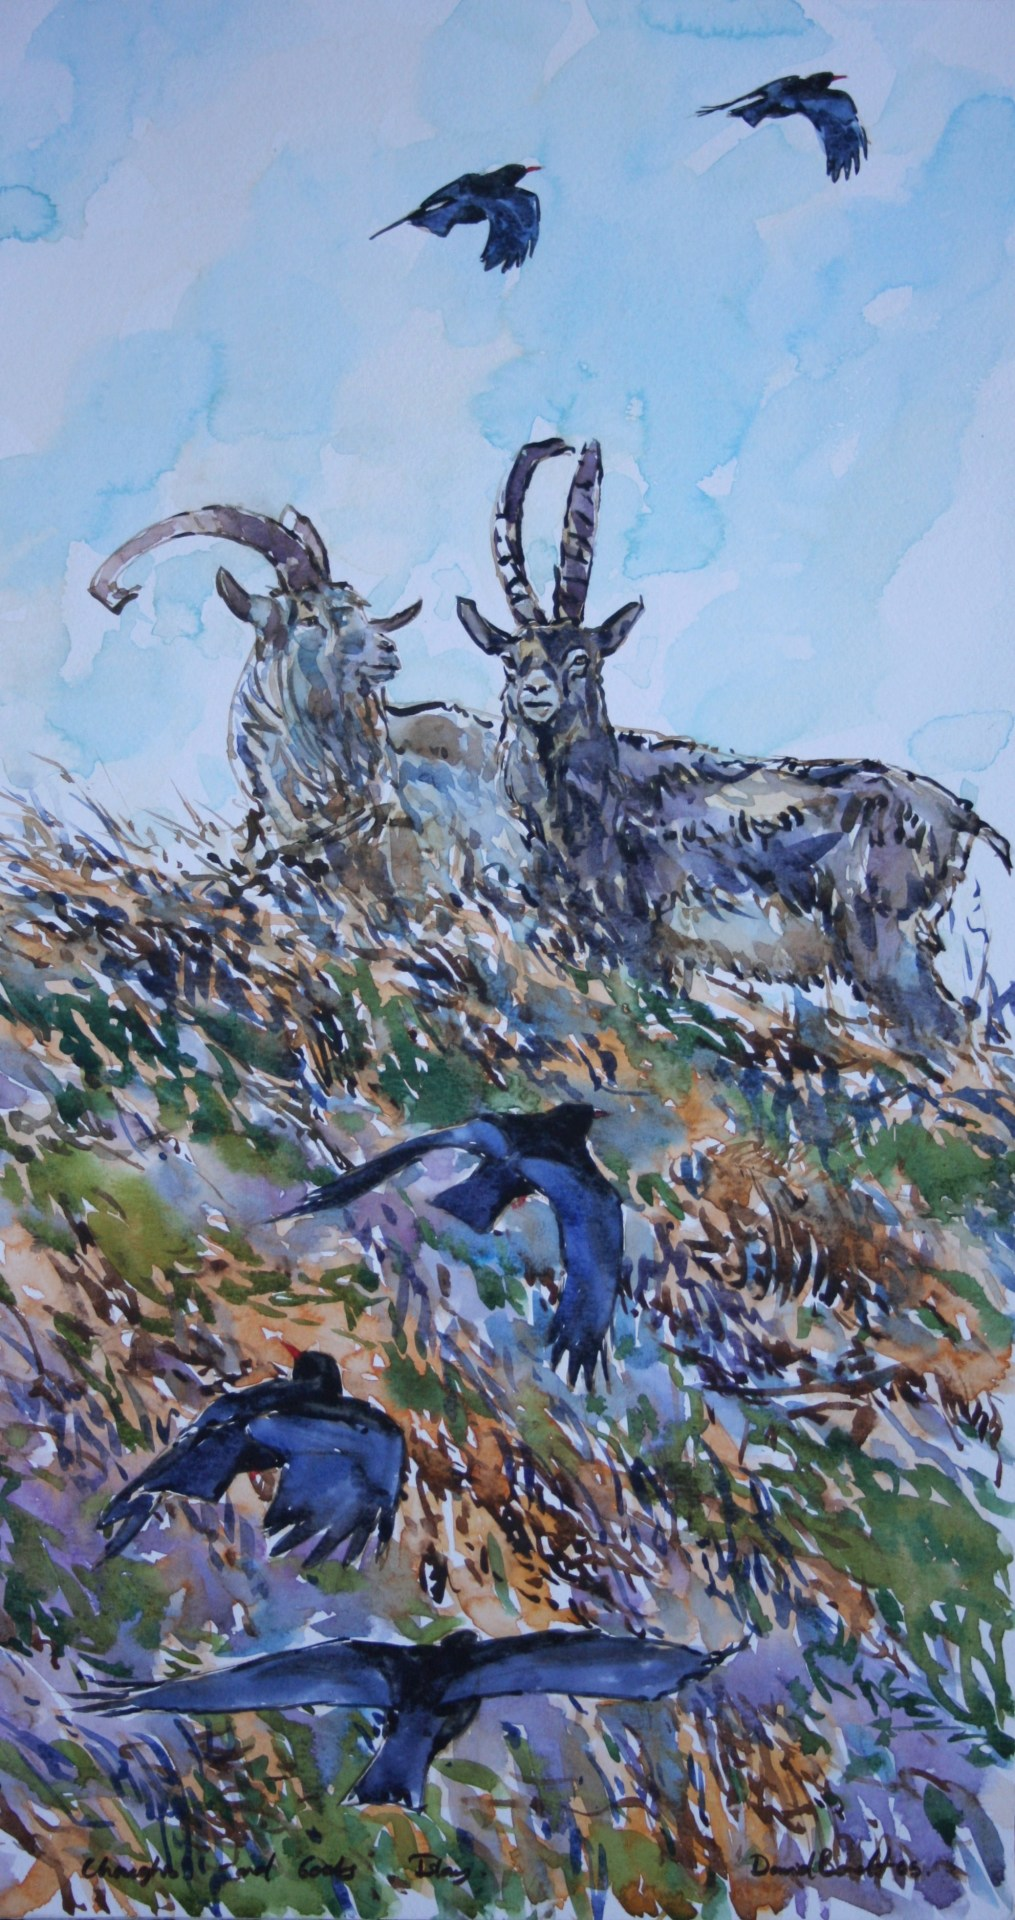 Goats and Choughs, islay